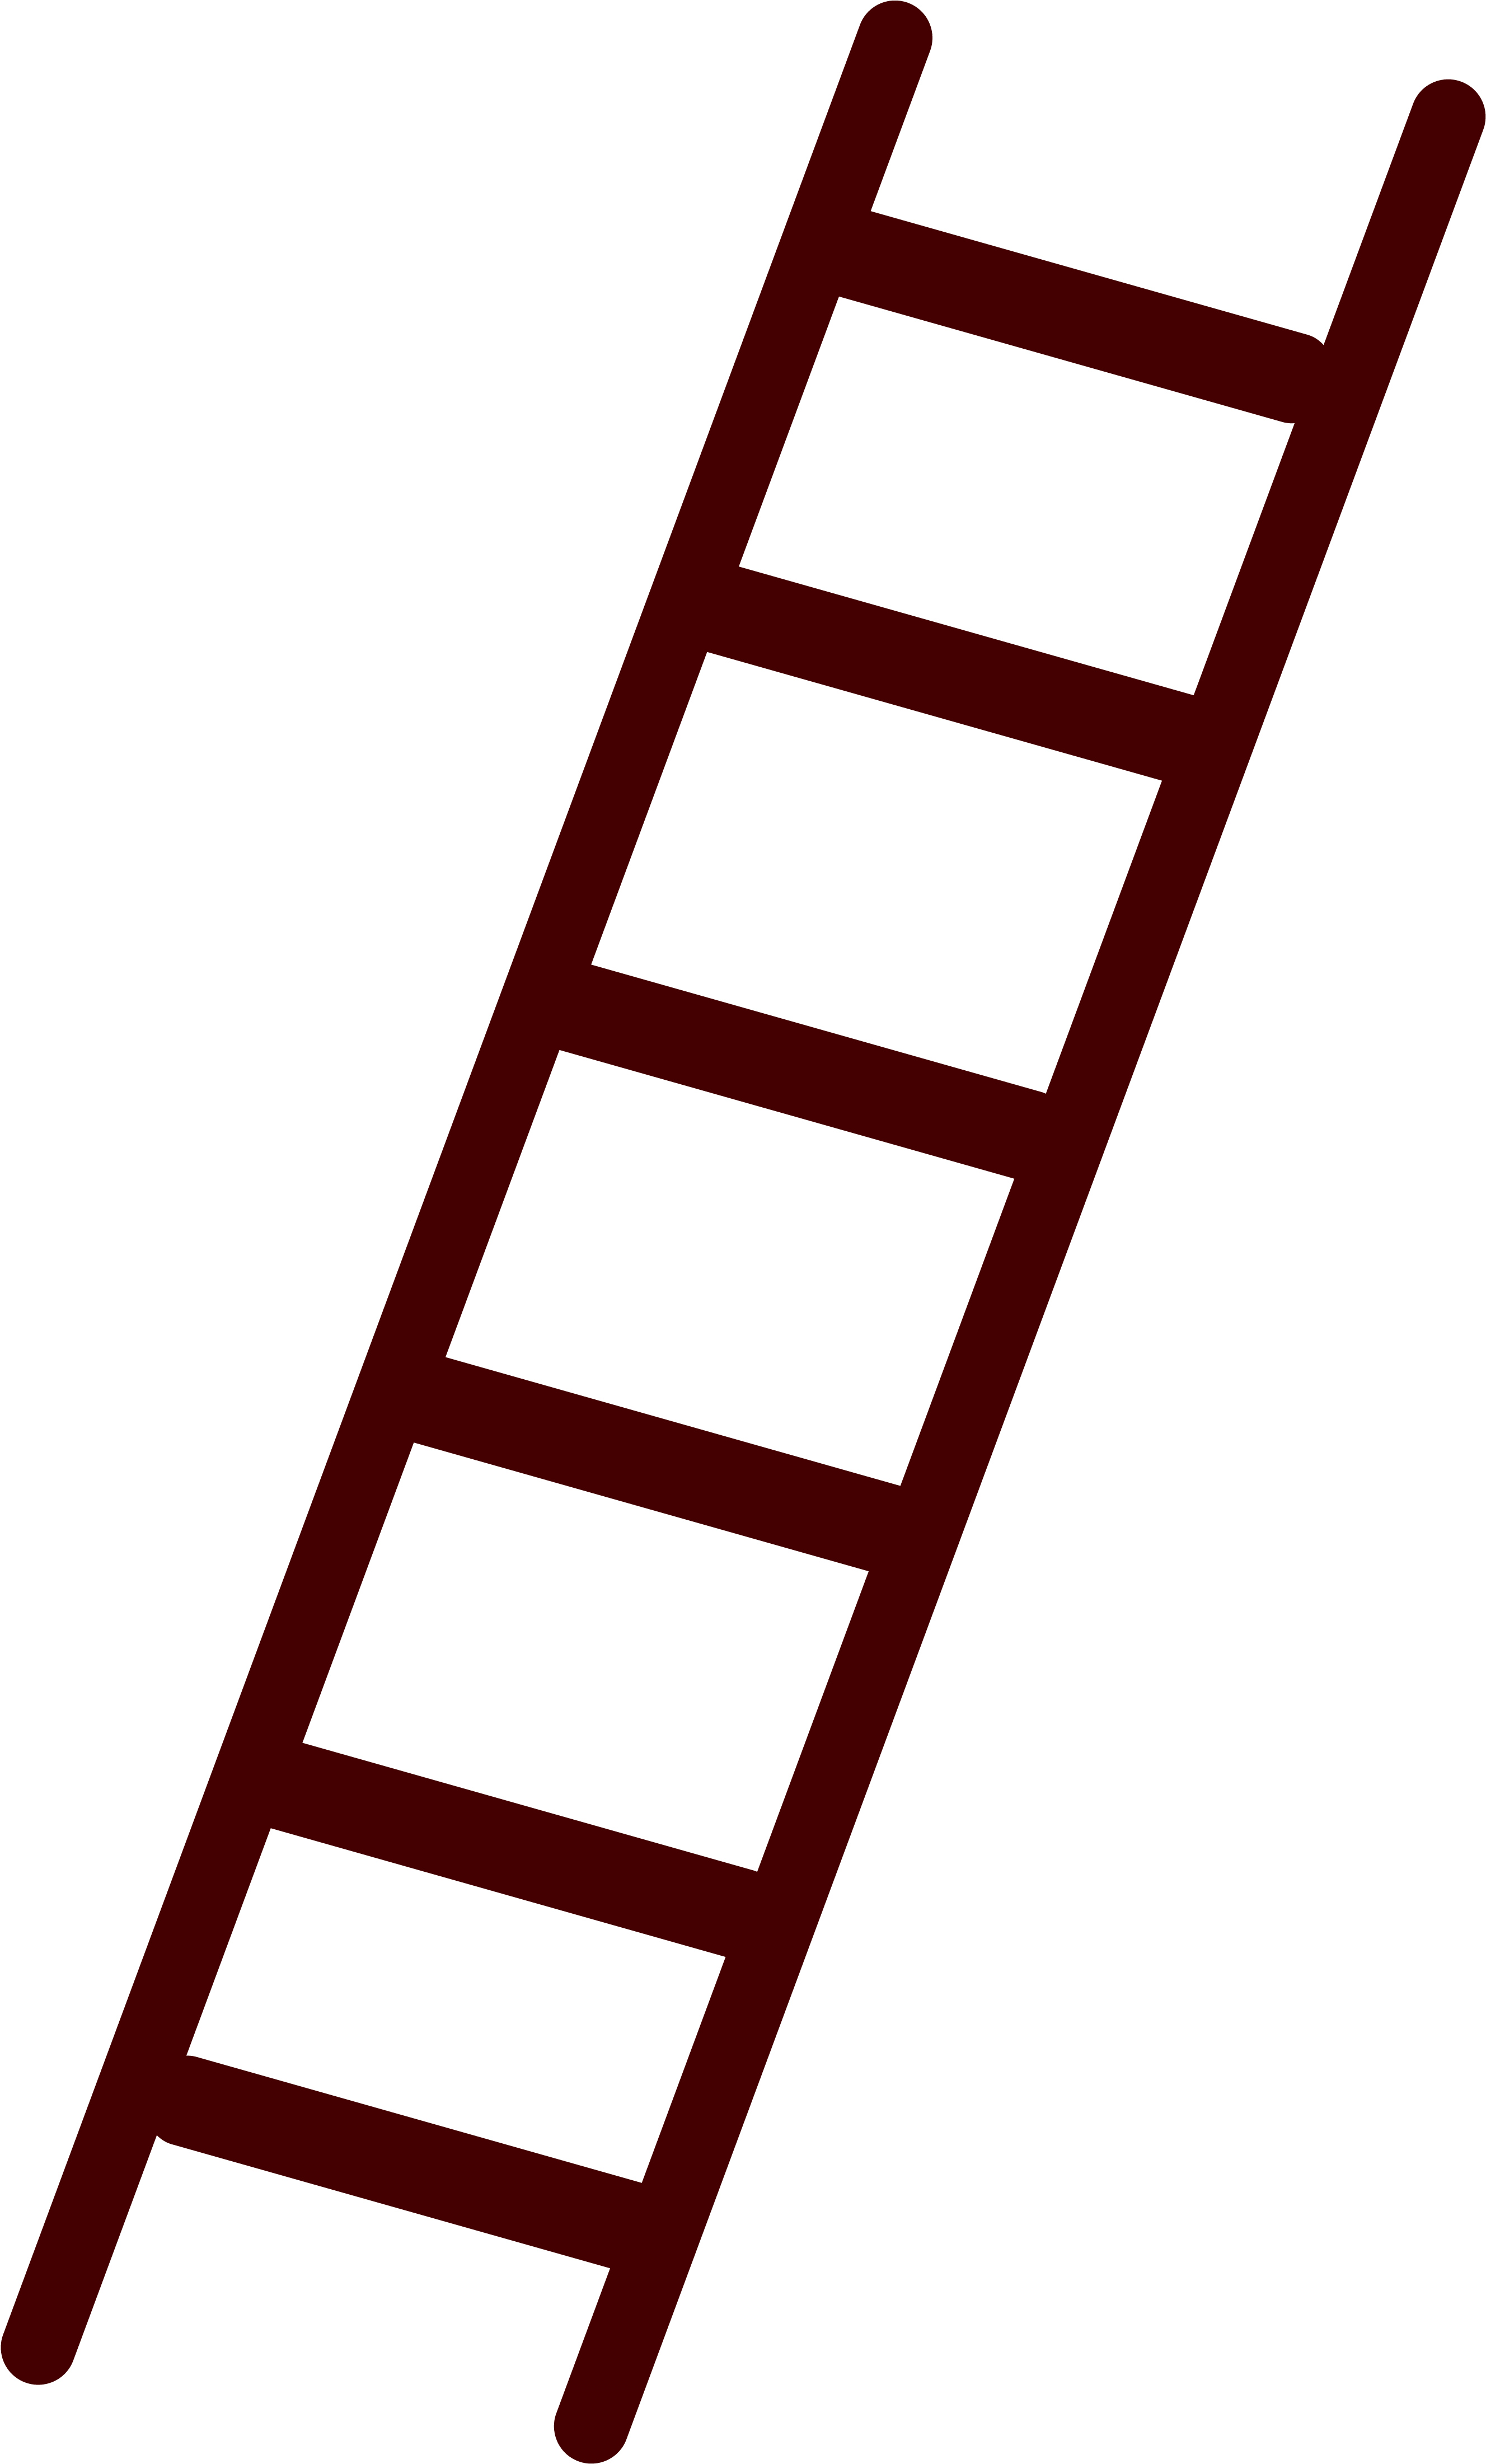 2655x4402 Download Ladder Drawing